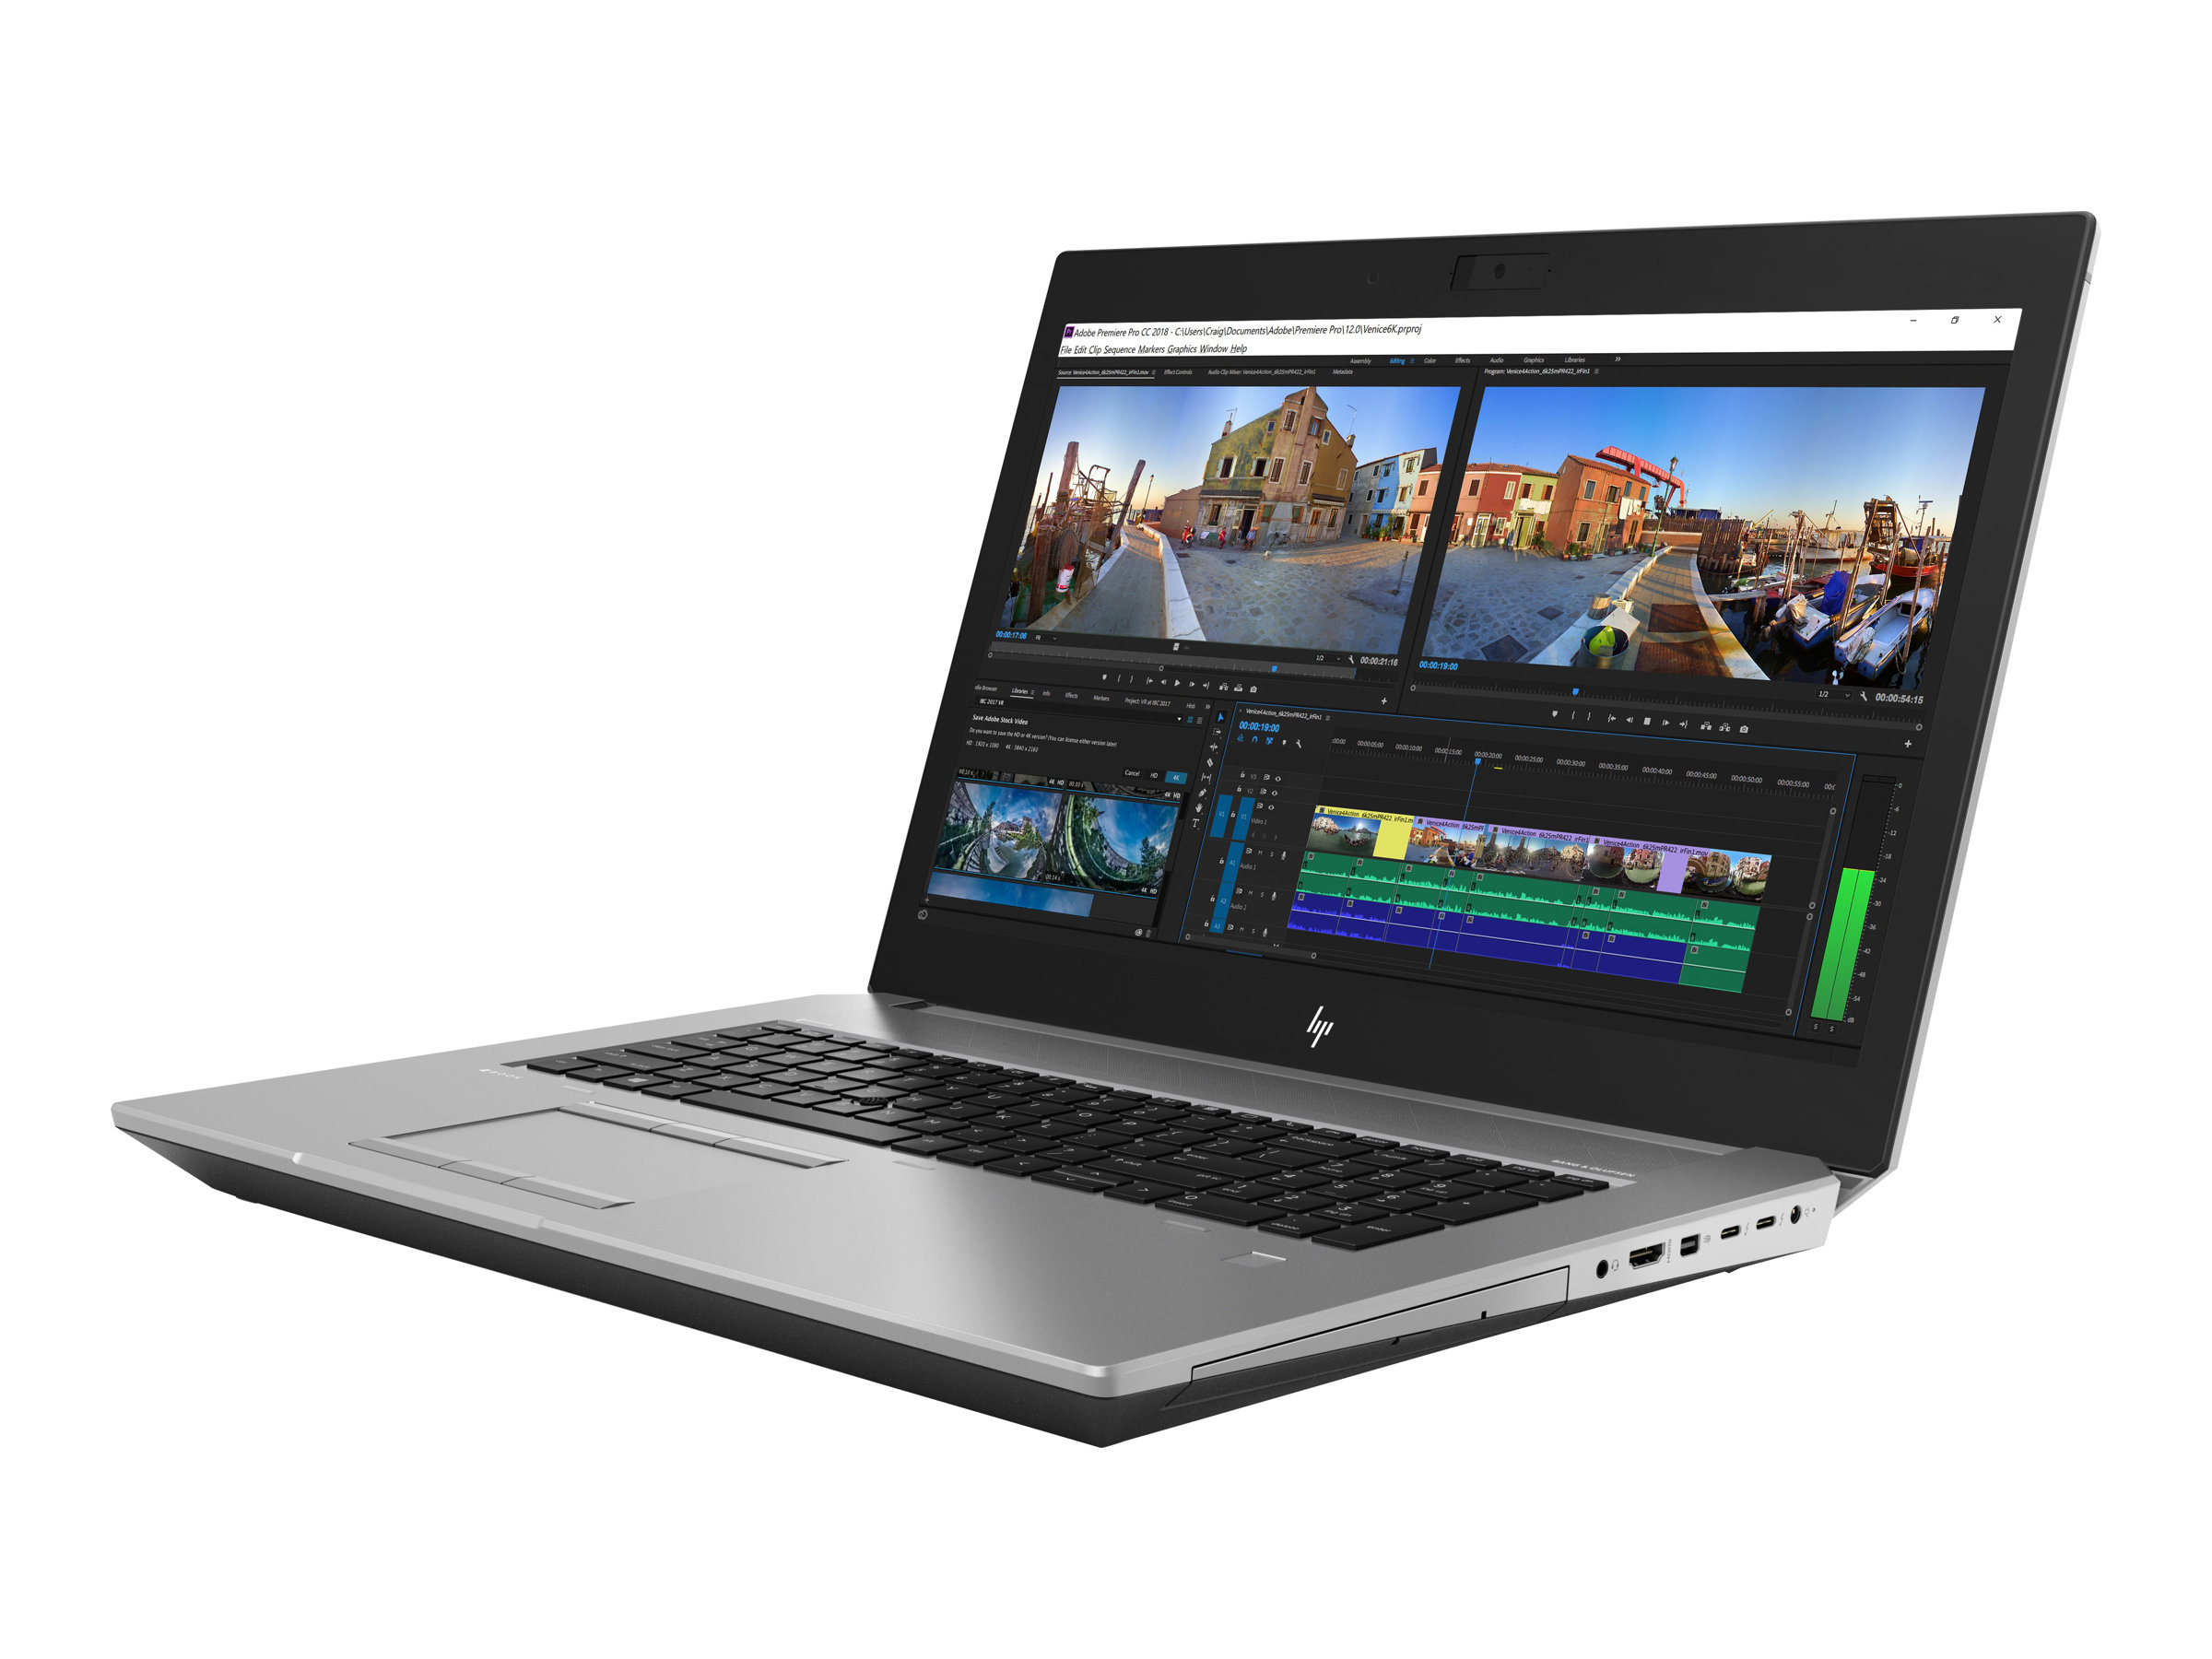 Hp zbook 17 g5 mobile workstation core i9 8950hk 2 9 ghz win 10 pro 64 bit 16 gb ram 512 gb ssd nvme tlc dvd writer blu ray 10856582 5uc10ea abd